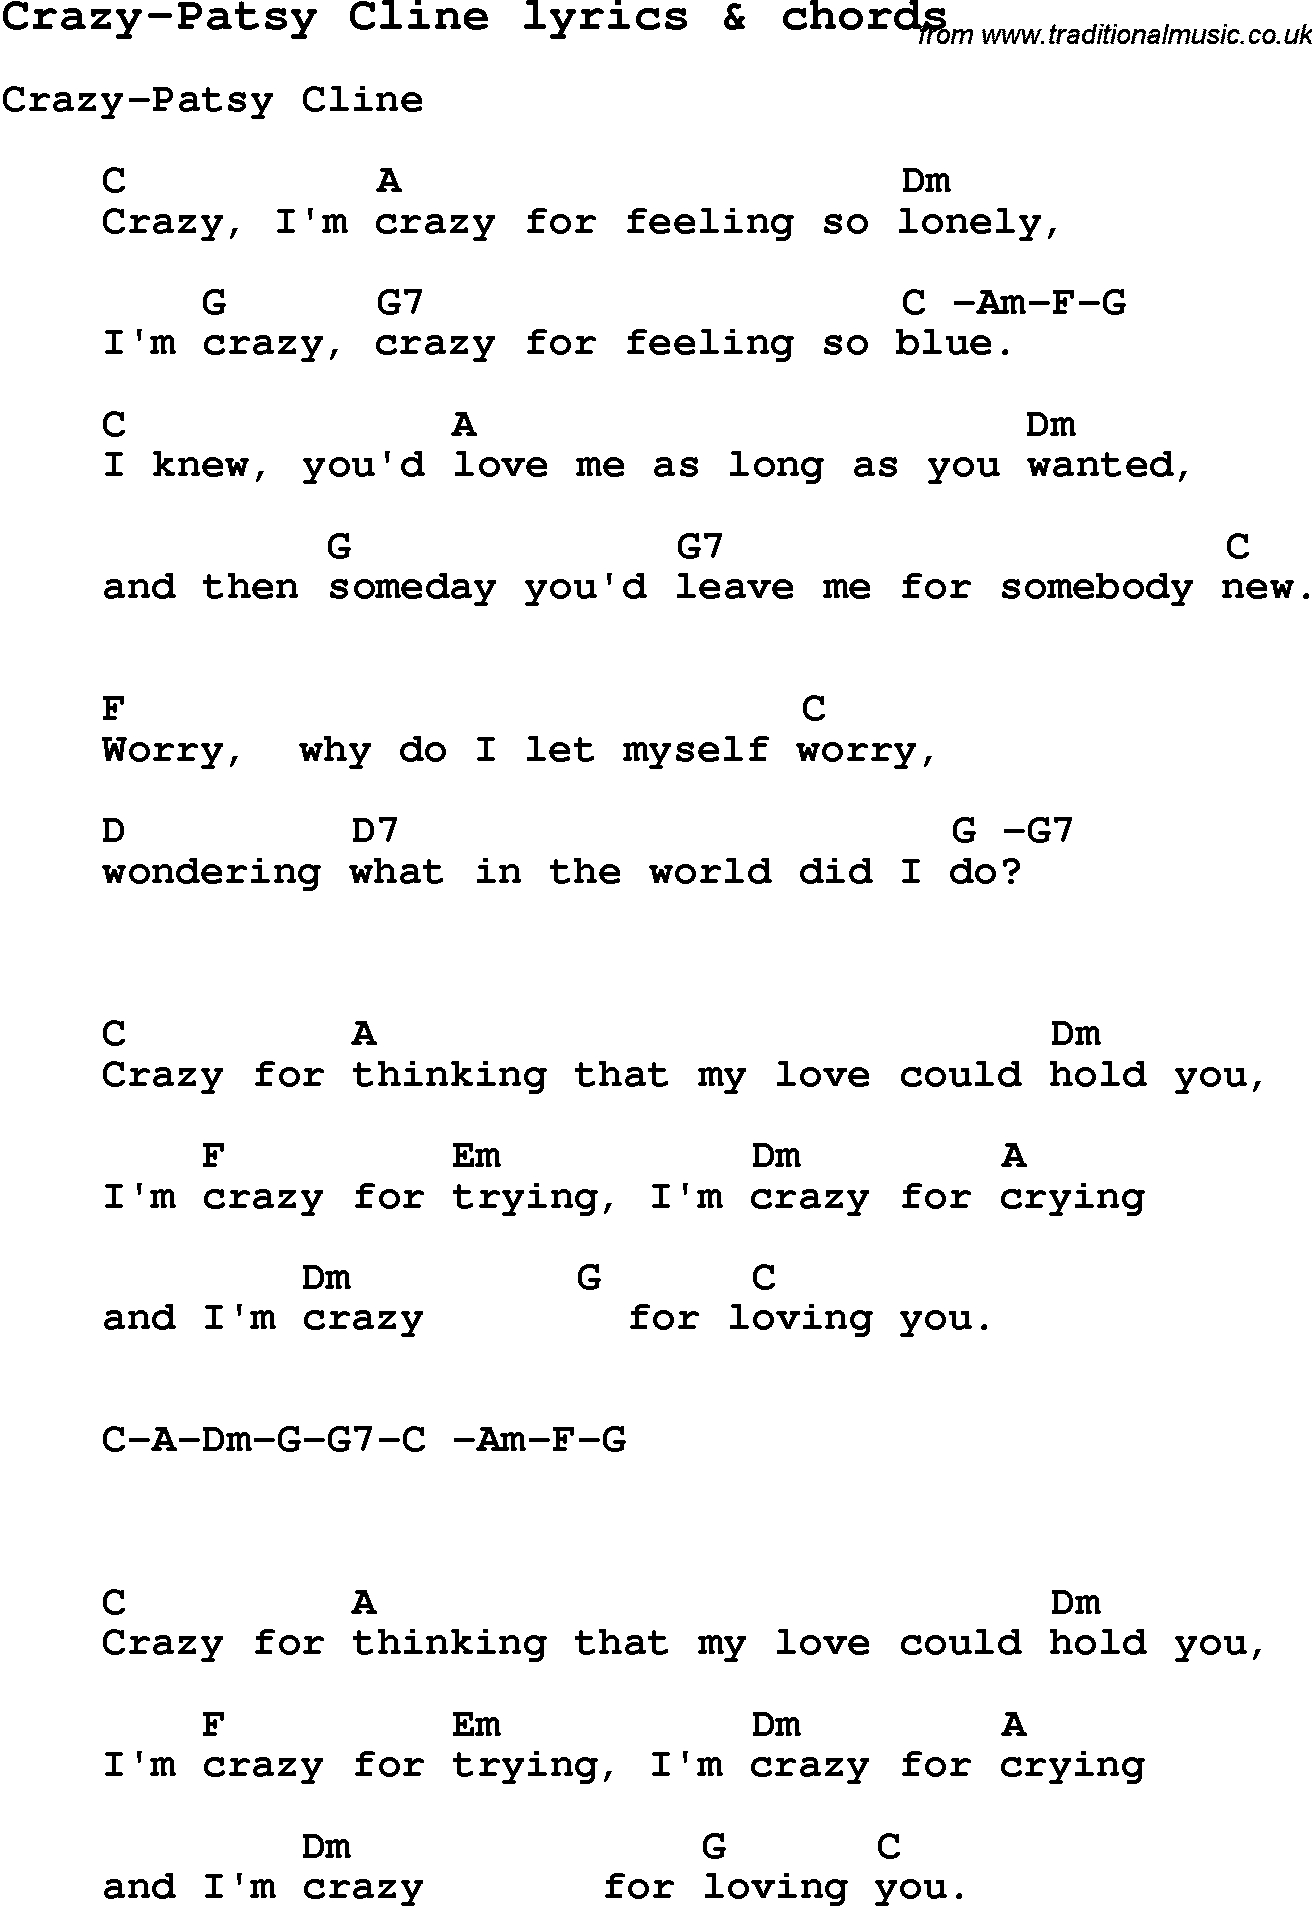 Love Song Lyrics For: Crazy-Patsy Cline With Chords For Ukulele - Free Printable Song Lyrics With Guitar Chords